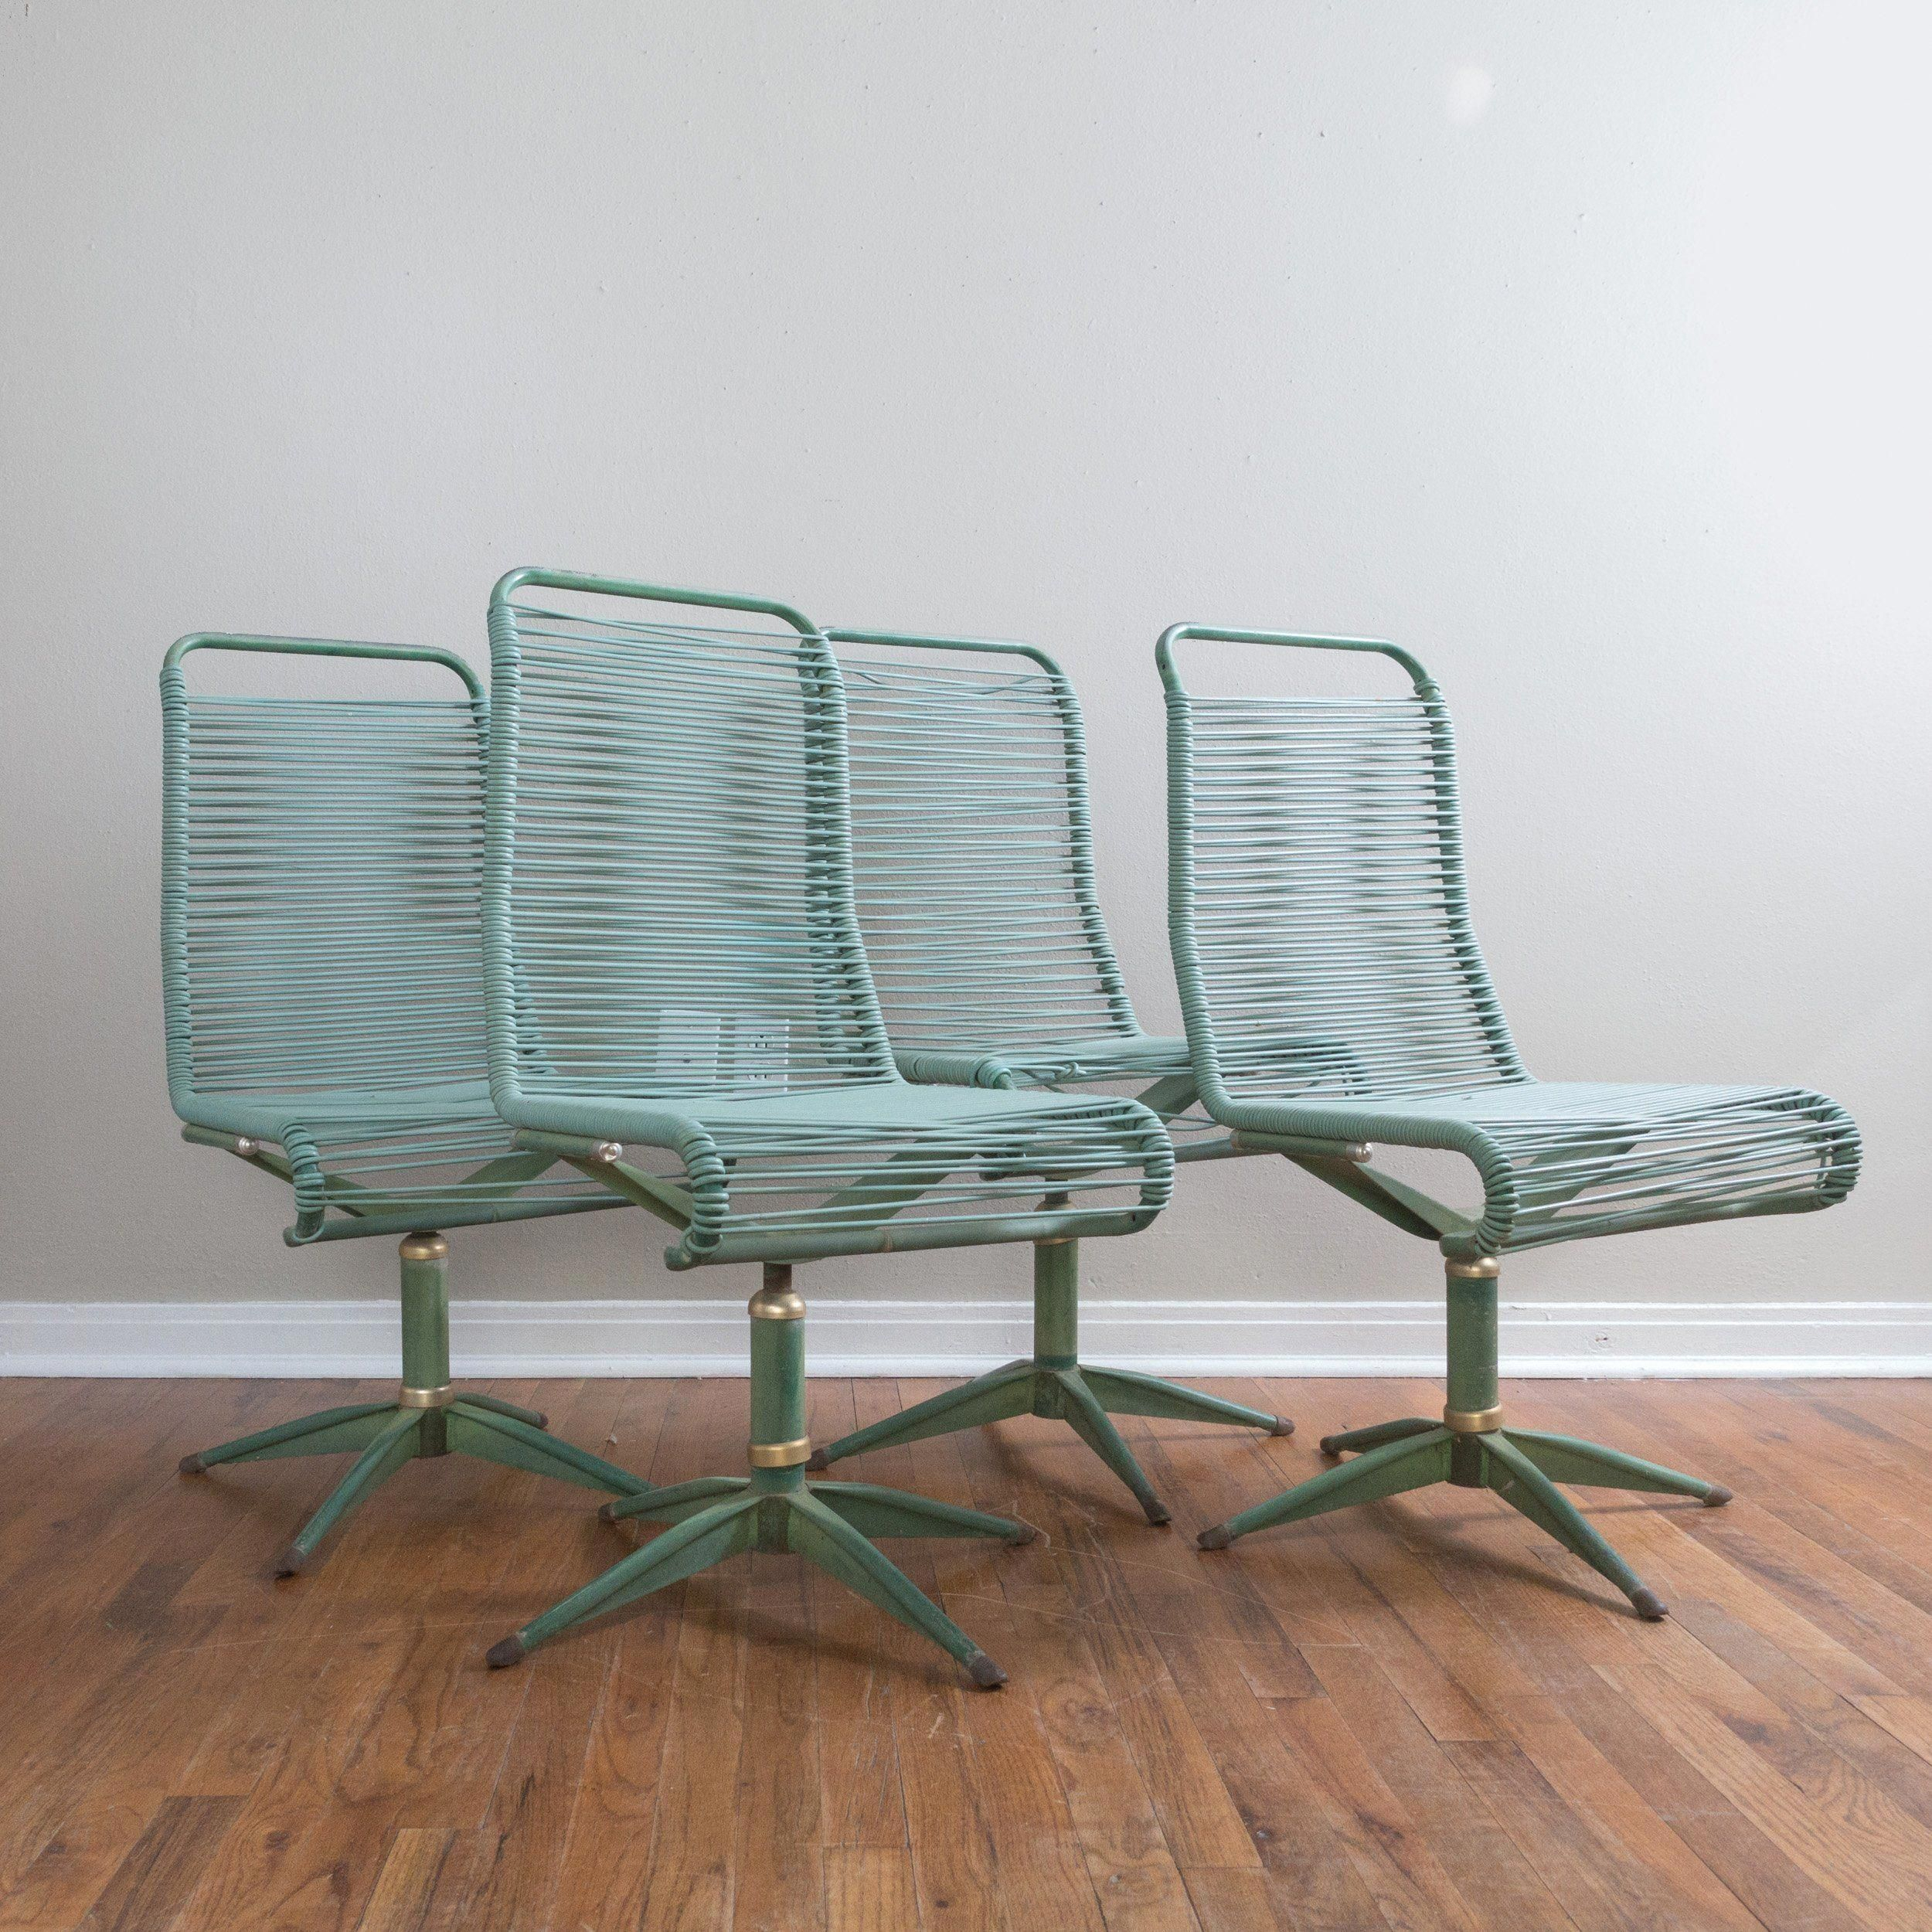 Set Of 4 Mid Century Ames Aire Green Patio Chairs Cabana Star Line With Regard To Ames Arm Sofa Chairs By Nate Berkus And Jeremiah Brent (Image 20 of 20)